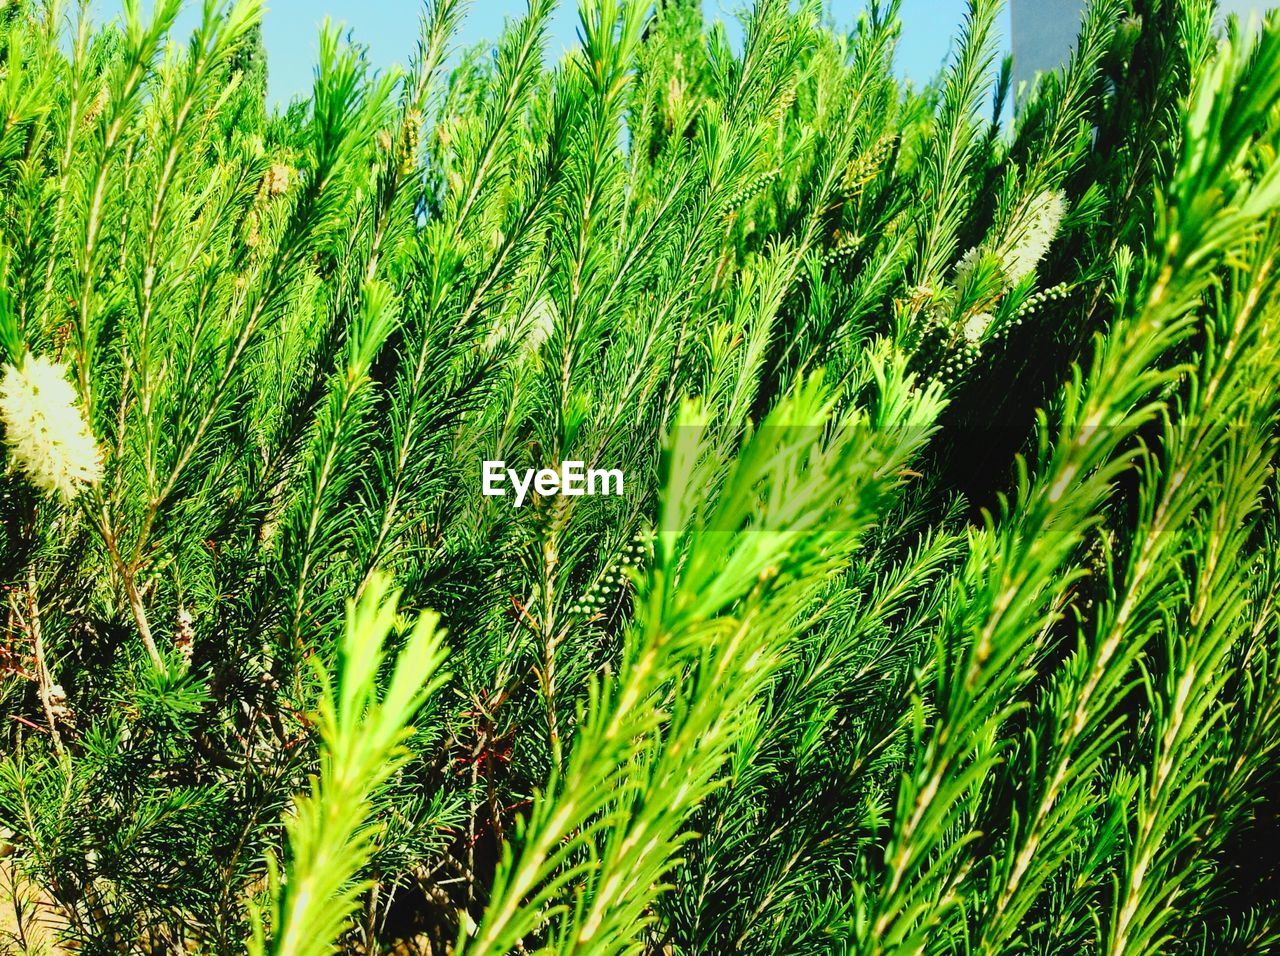 growth, green color, nature, day, beauty in nature, no people, plant, outdoors, grass, leaf, close-up, frond, freshness